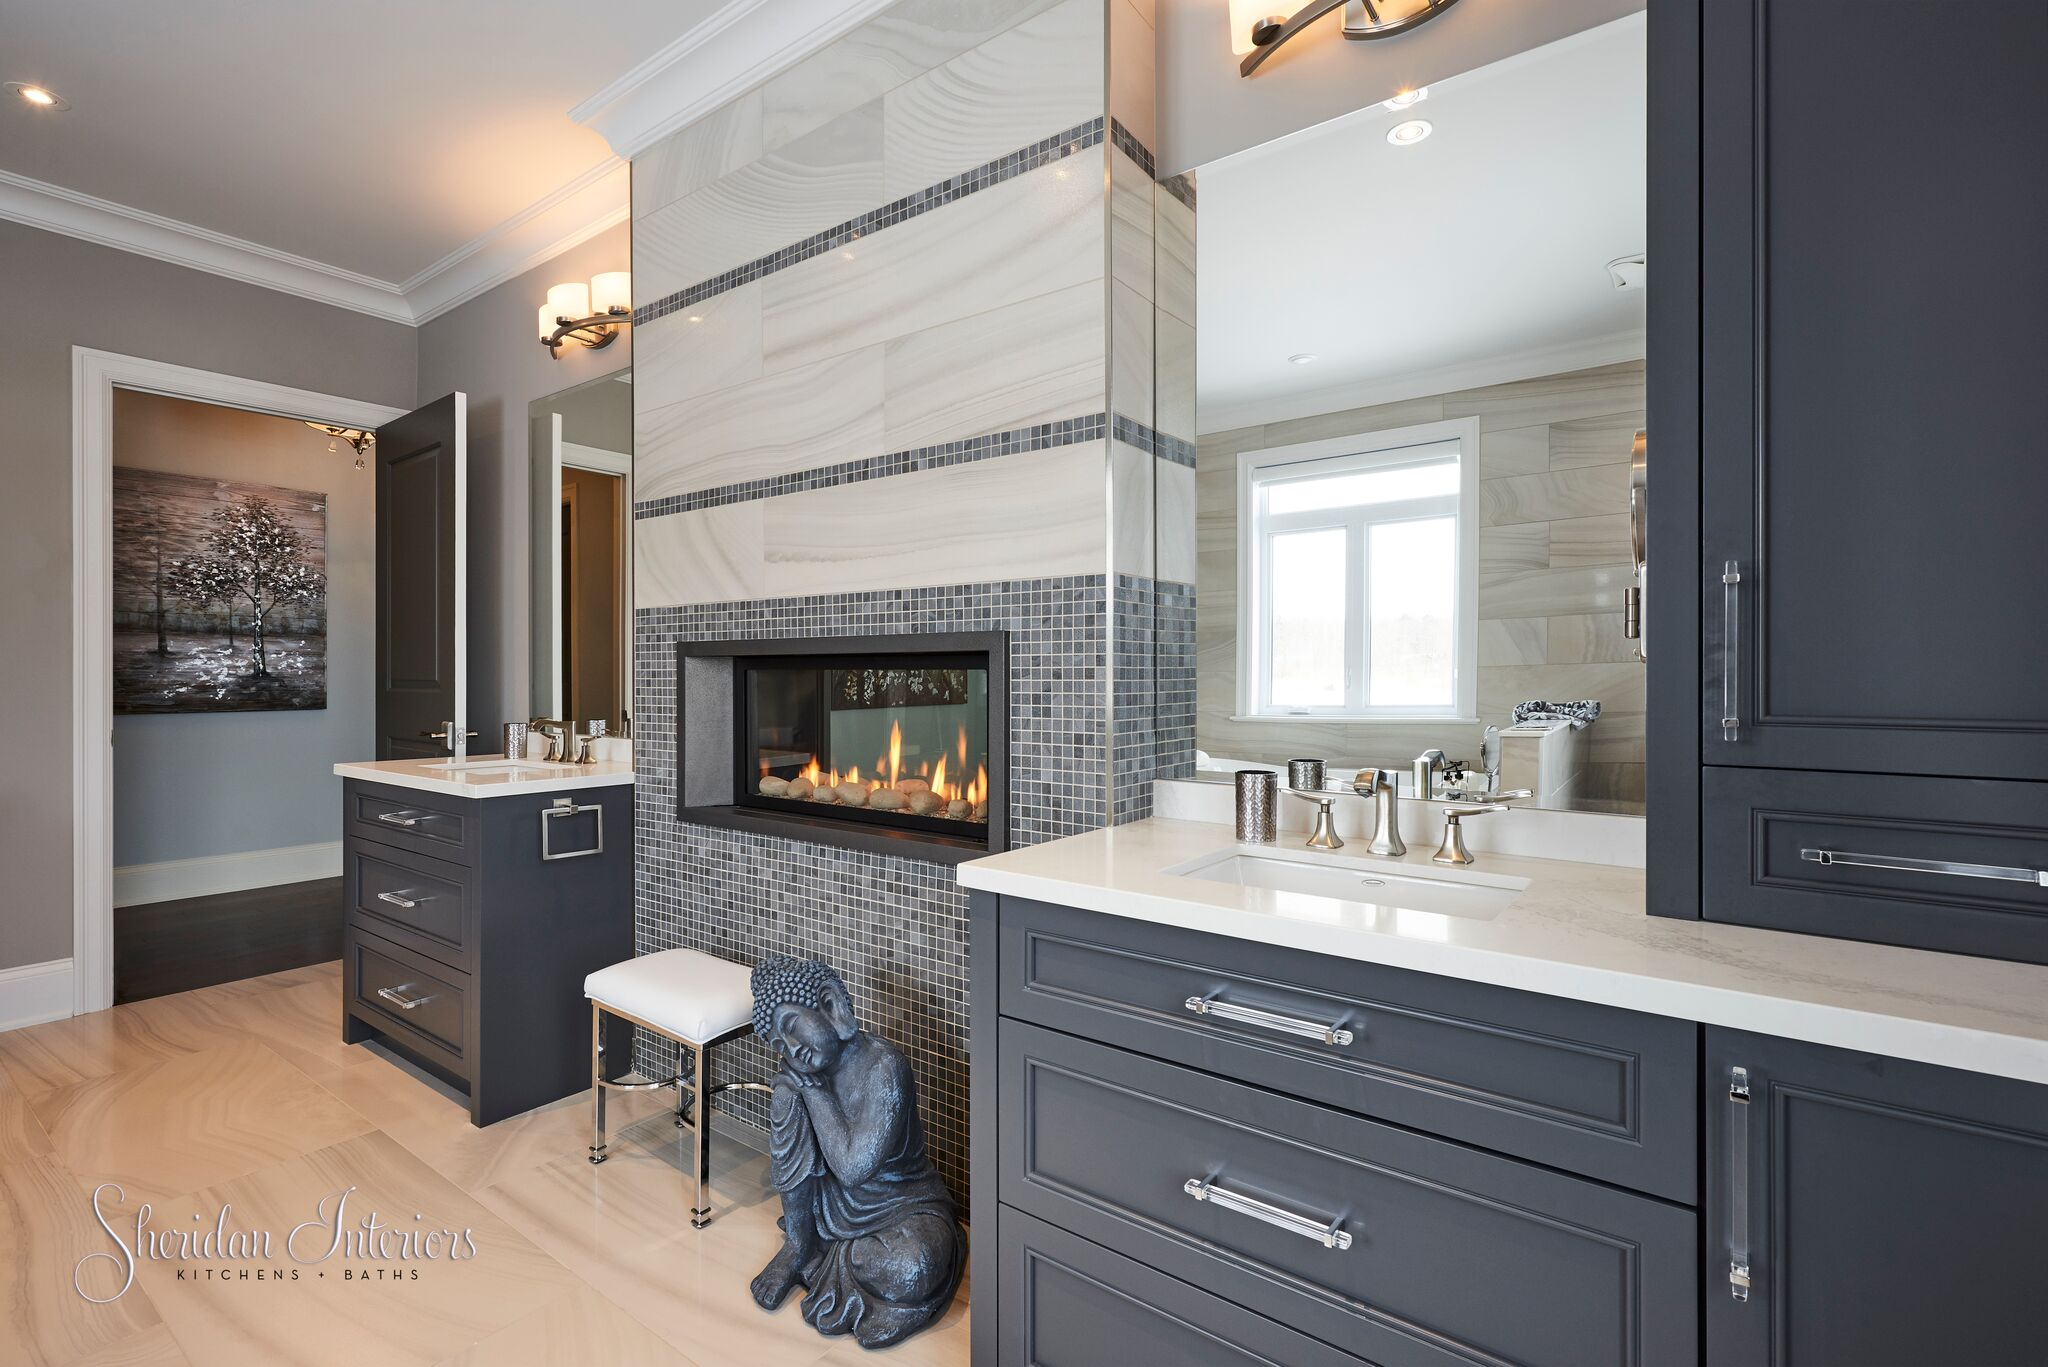 Modern master bathroom, bathroom with fireplace, vanity with drawers